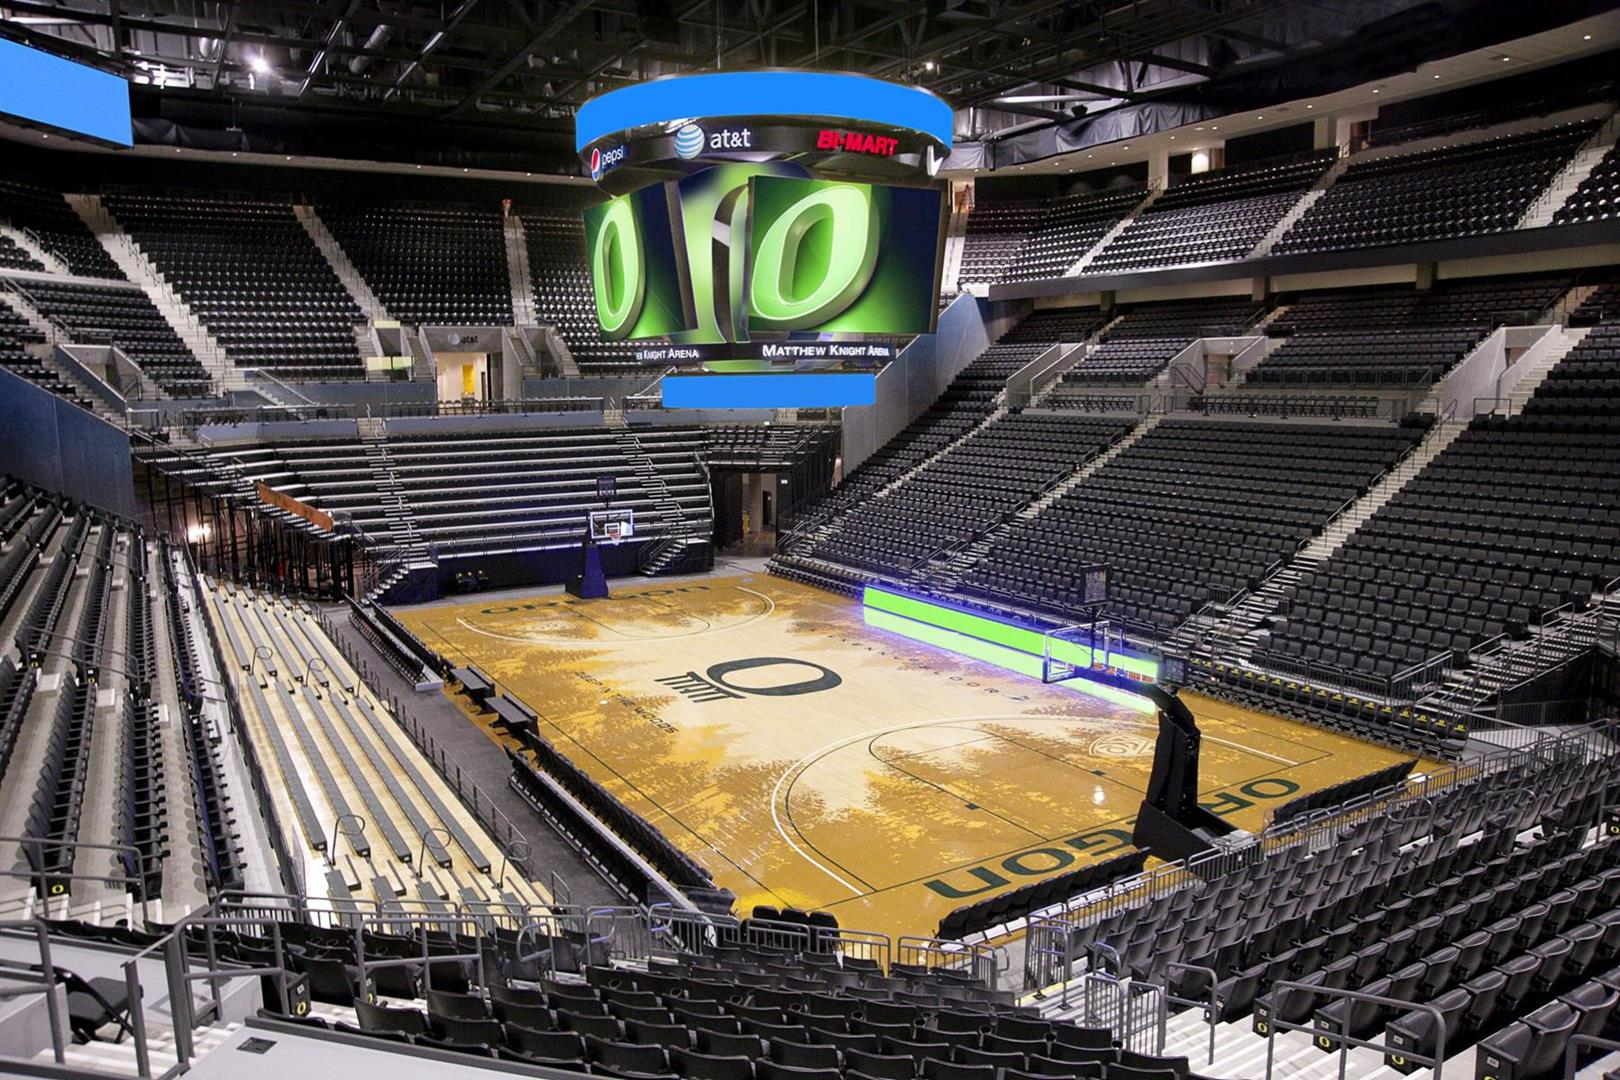 Matthew Knight Arena inside basketball court